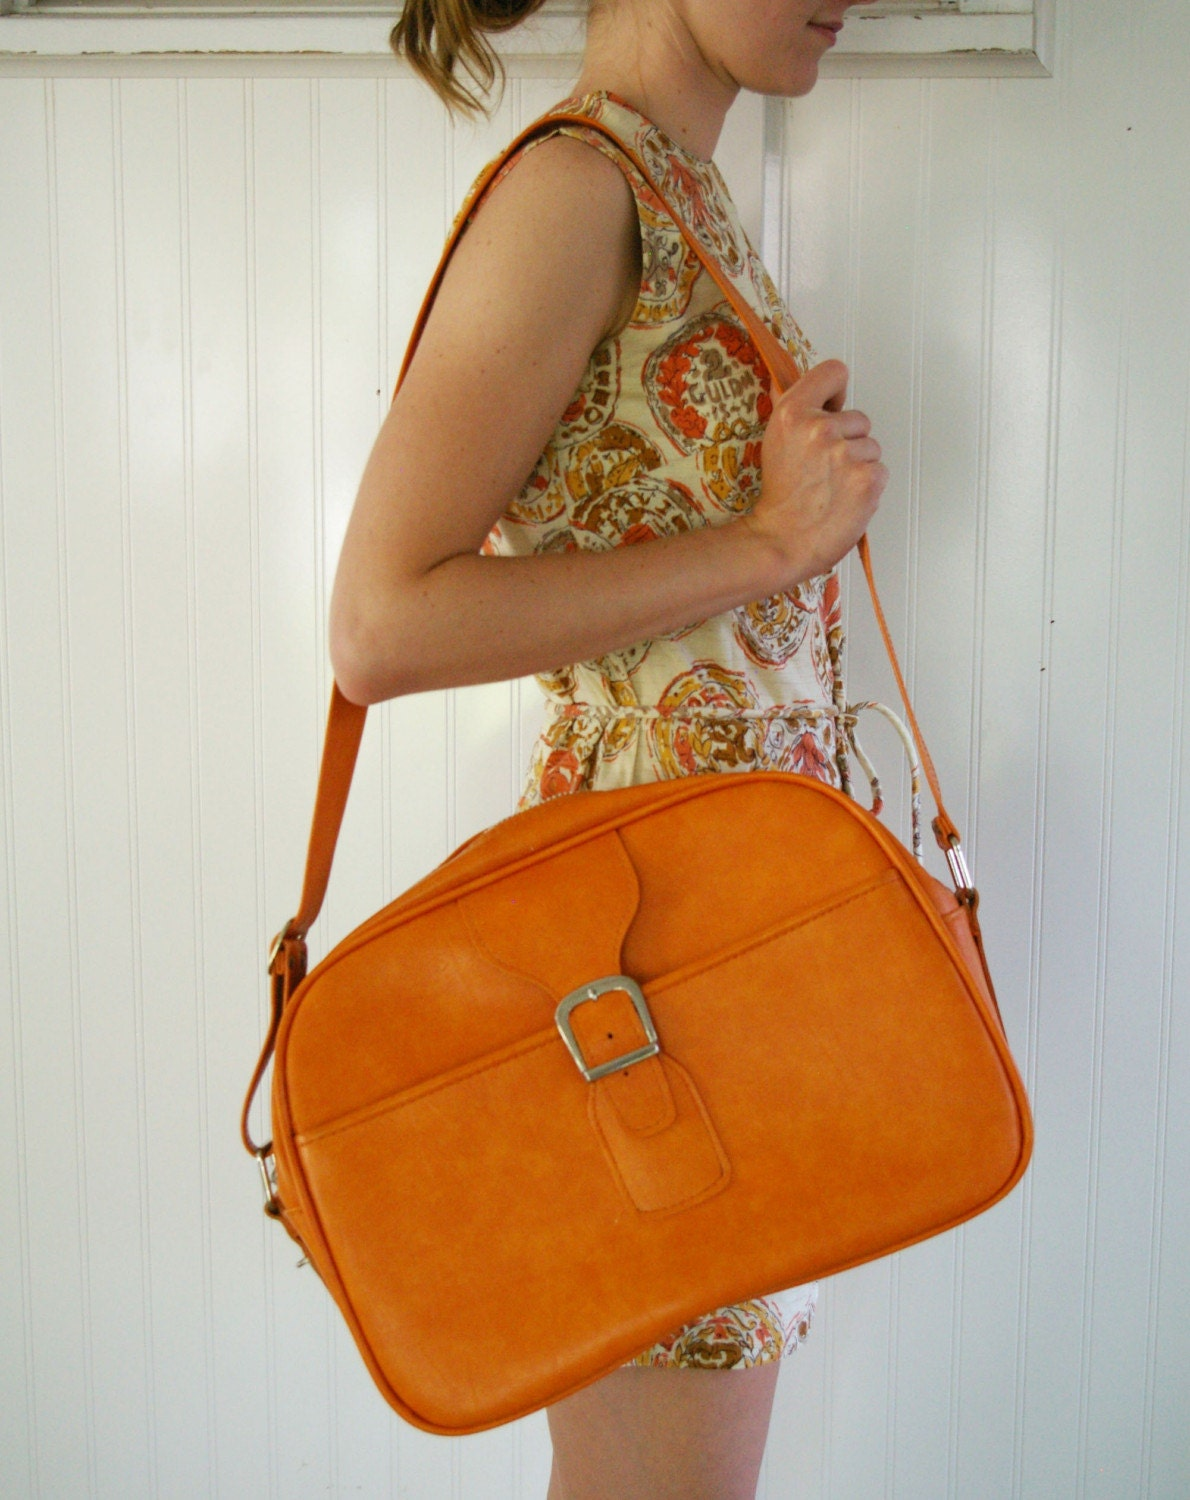 Vintage ORANGE CRUSH Travel Bag by MariesVintage on Etsy